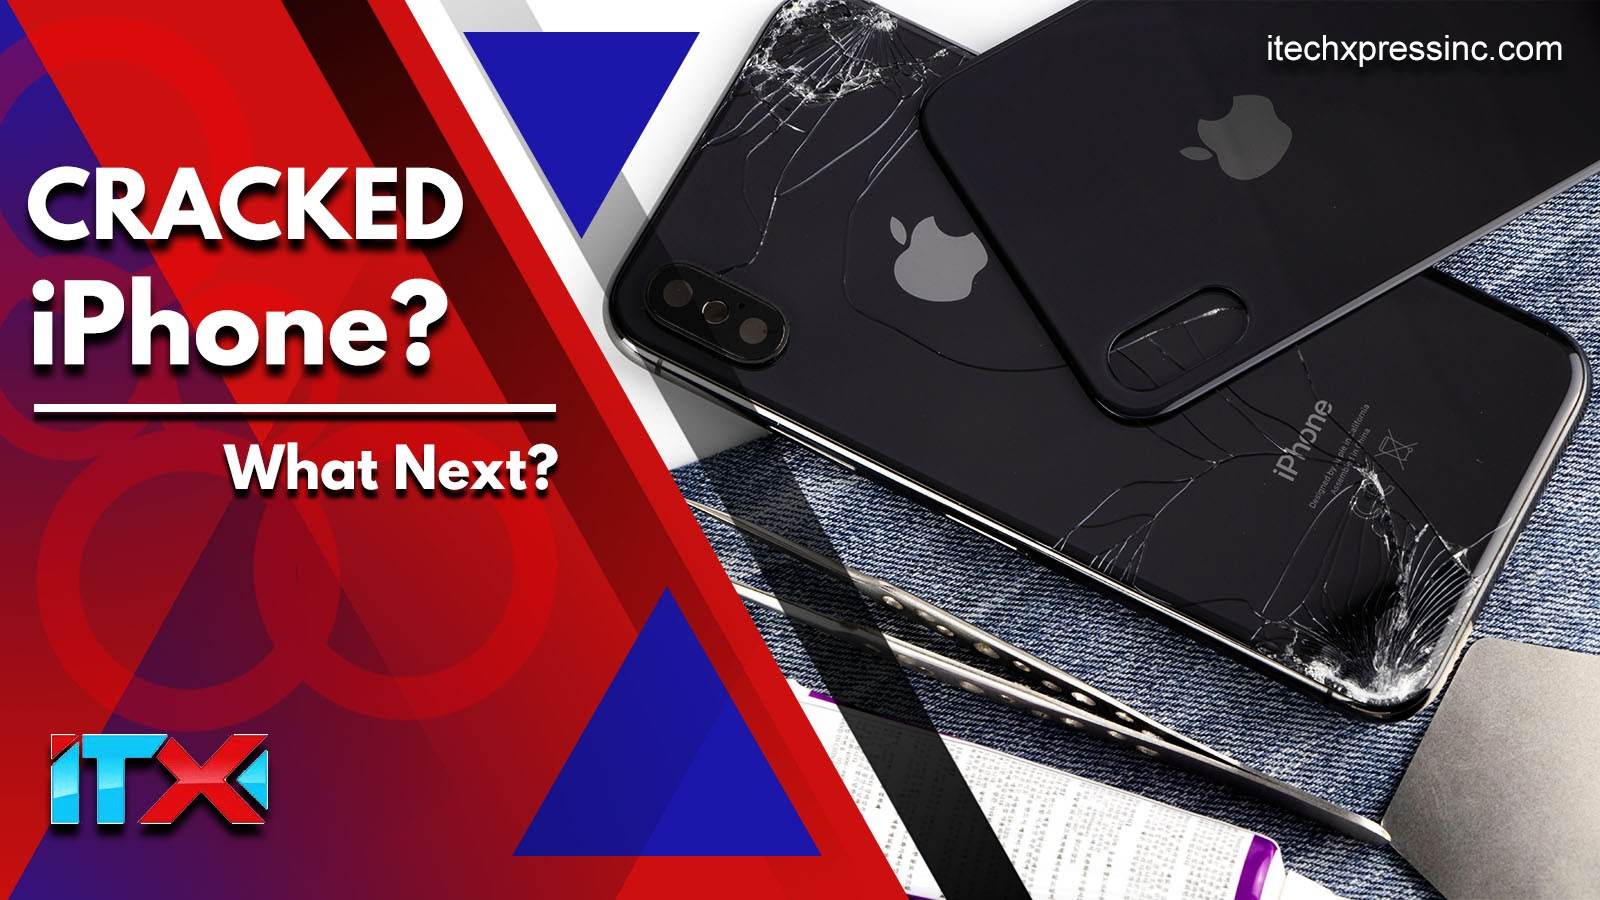 Where to Get iPhone Screen Fixed near Me